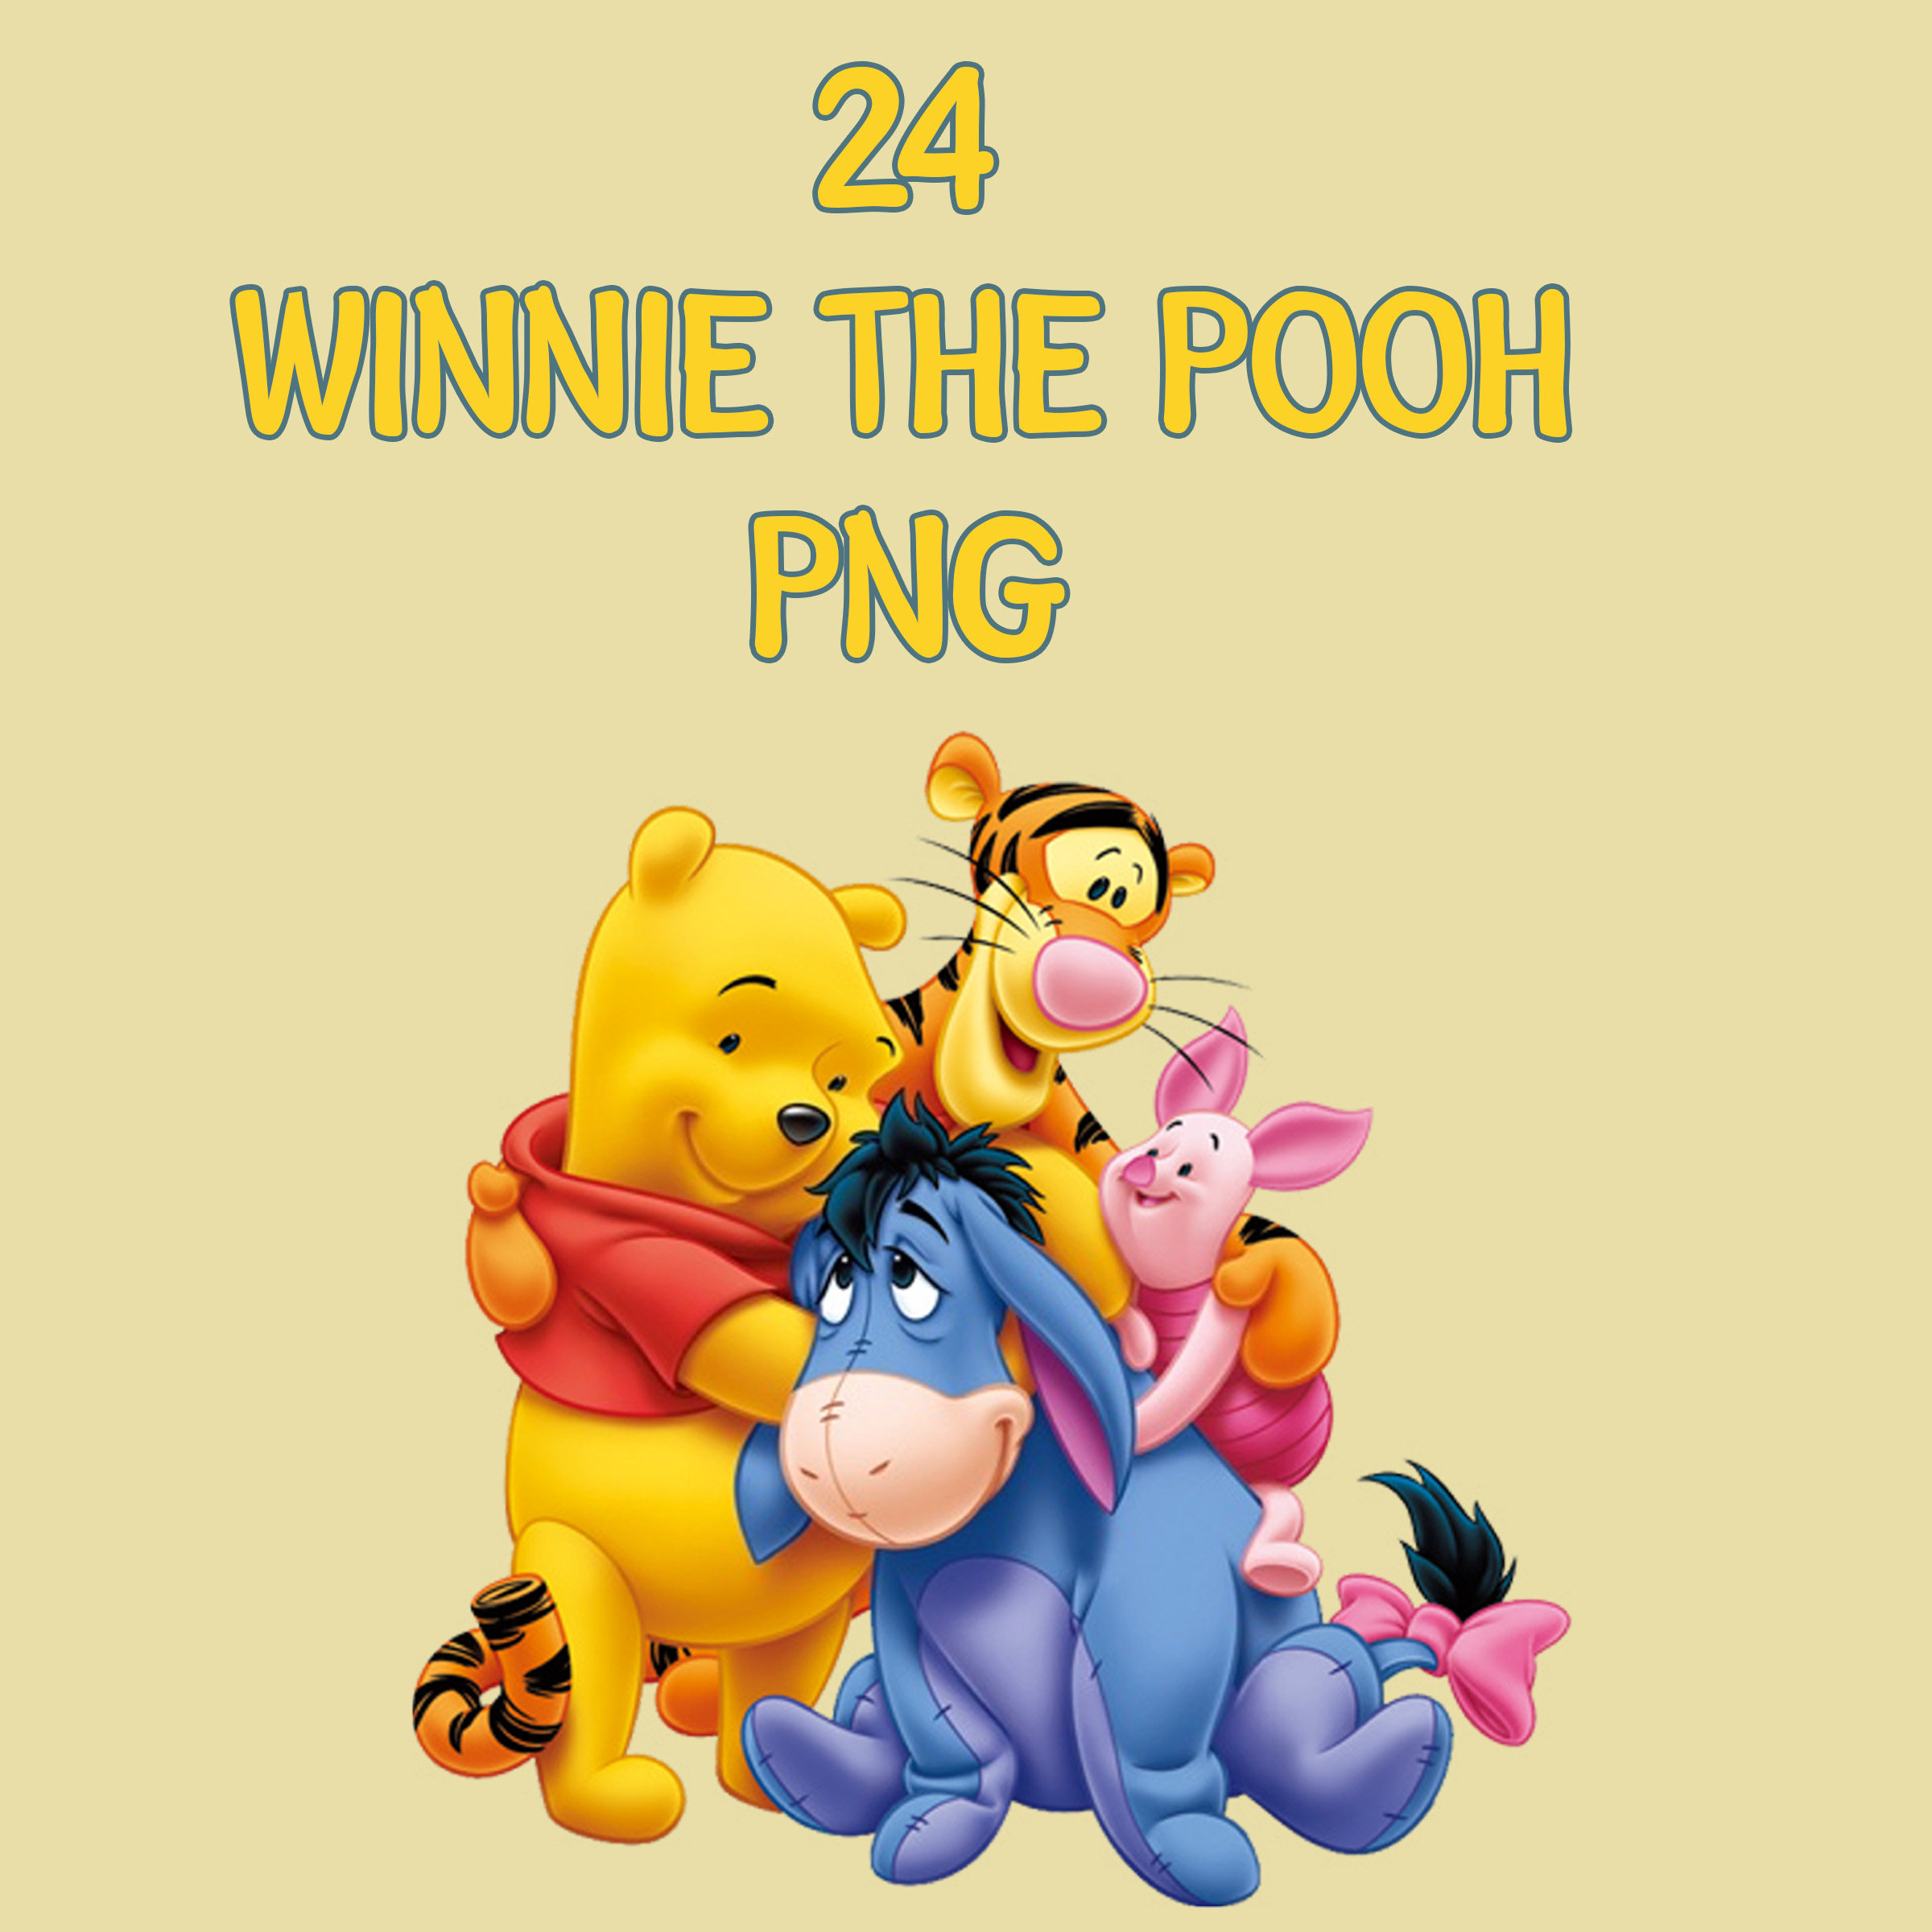 2400x2400 Winnie The Pooh Clip Art Poster Making Arts And Crafts Diy